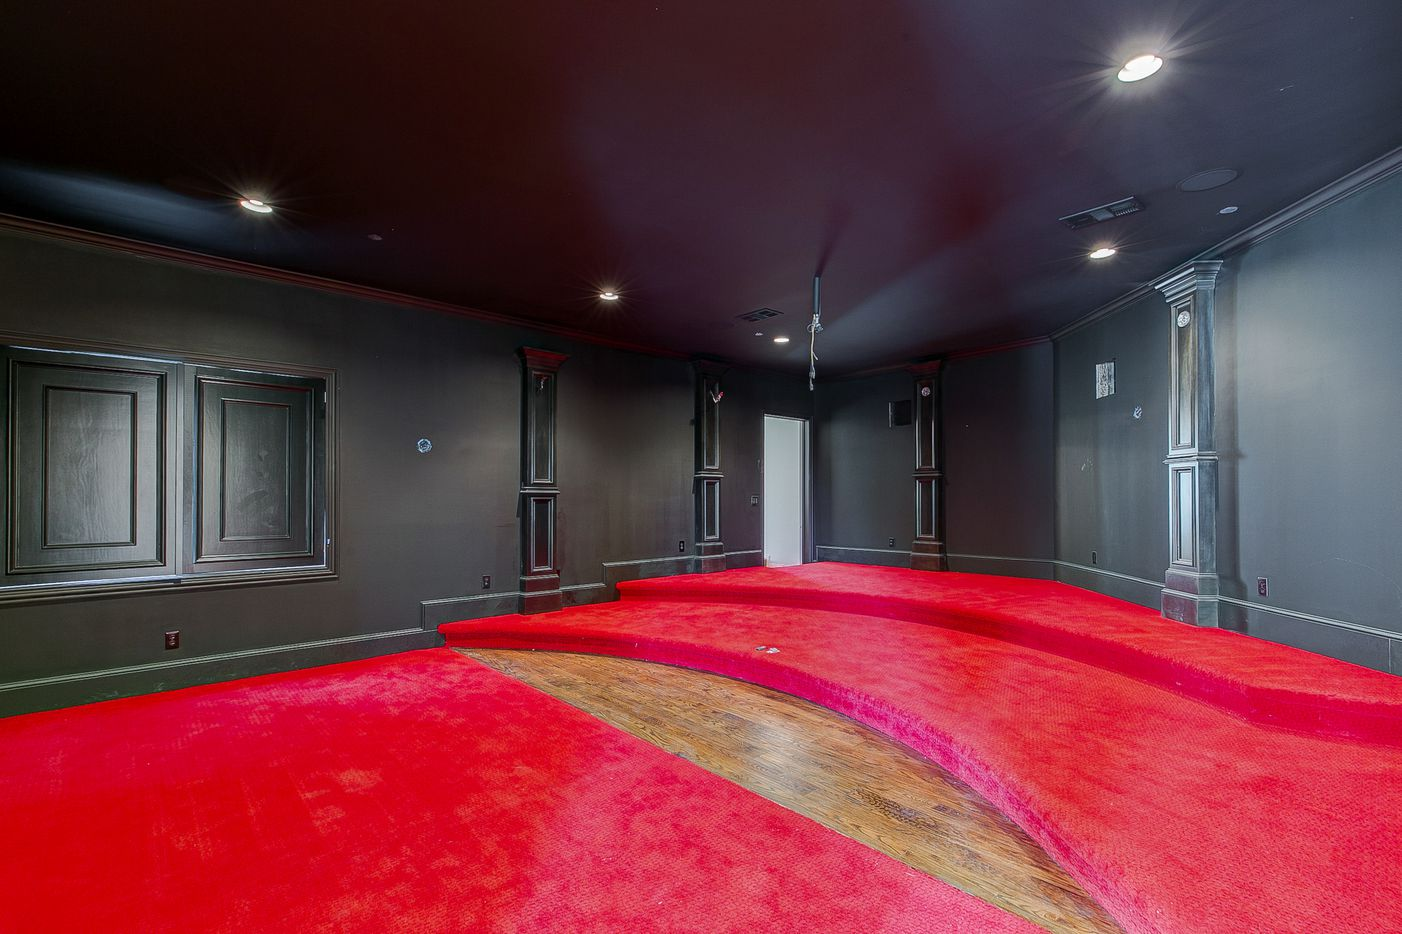 Media, or theater, room at 2000 Willow Bend Drive. (Norman and Young)